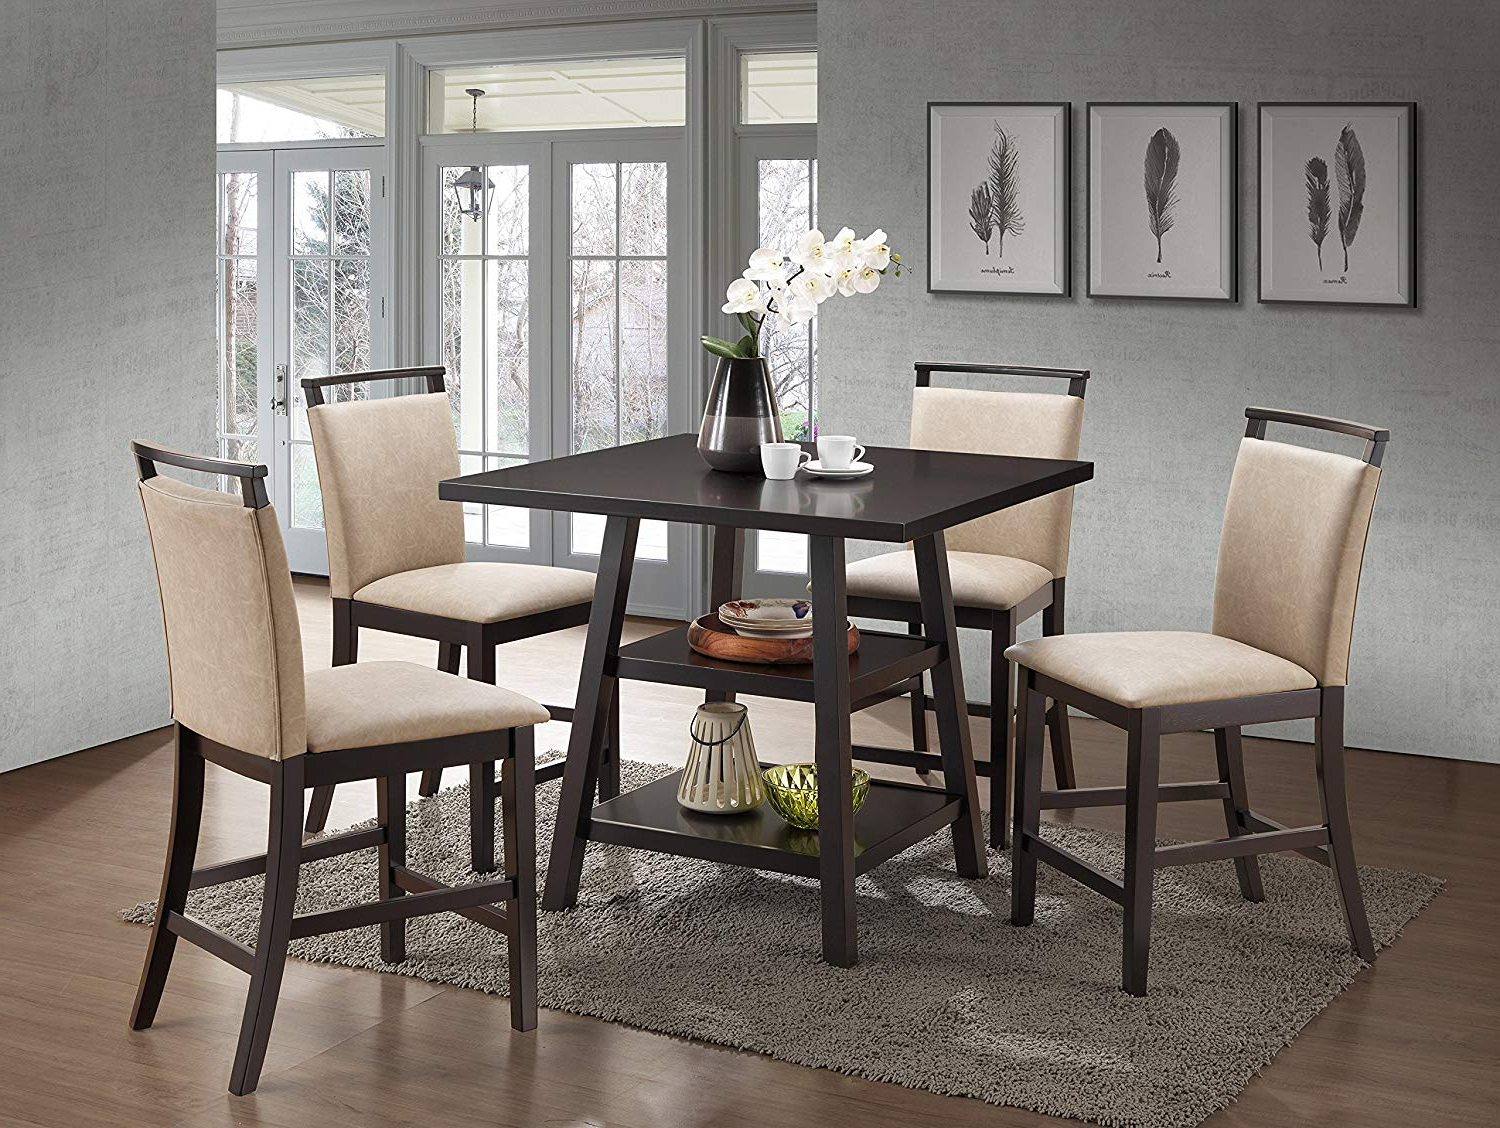 Cappuccino Finish Wood Classic Casual Dining Tables In Current Kings Brand Aloe 5 Piece Cappuccino Wood Counter Height Dining Set, Table  With 4 Clay Upholstered Chairs (View 7 of 30)